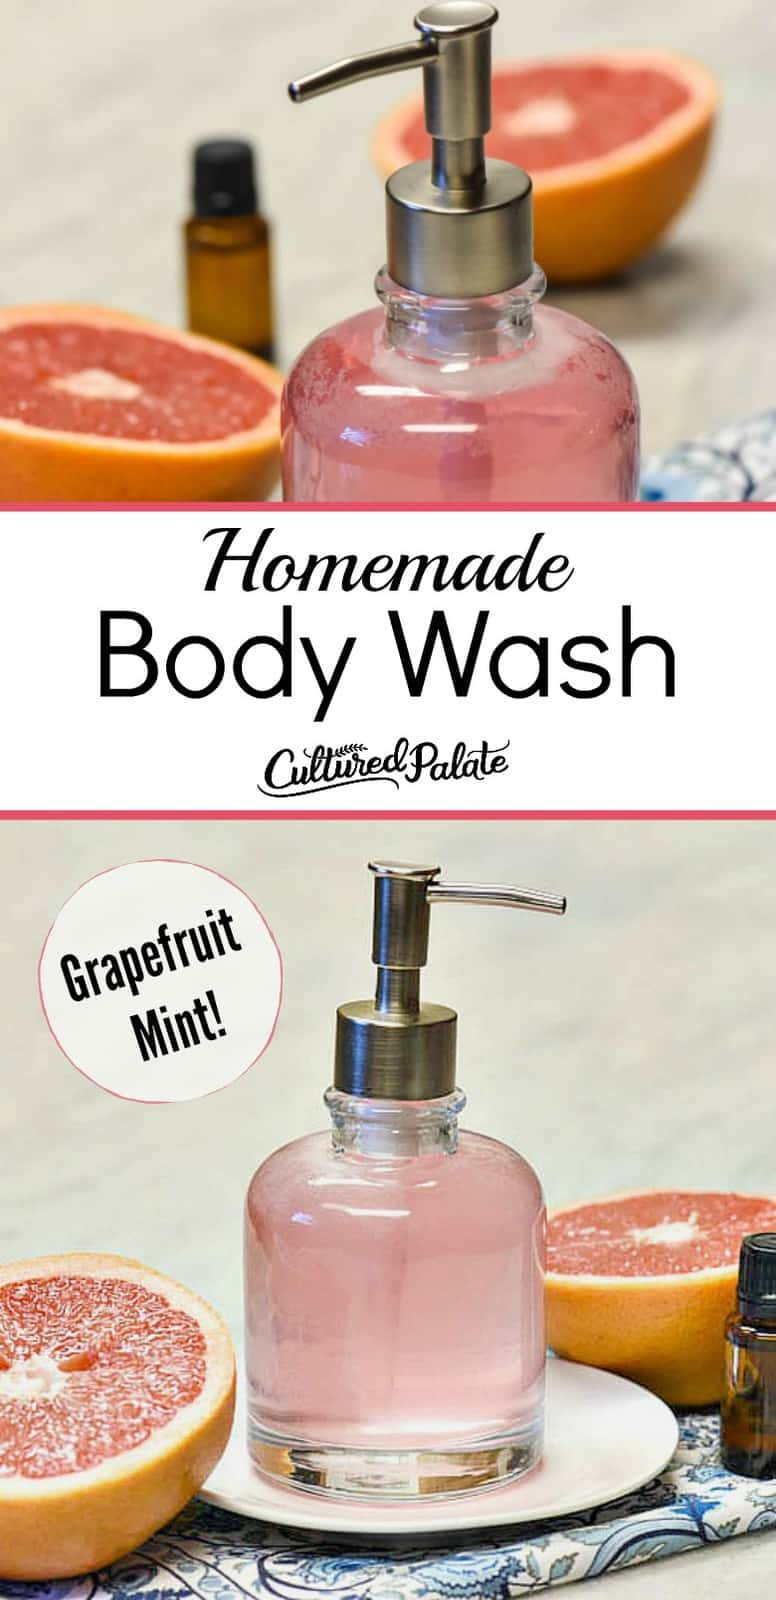 two images of homemade body wash with text overlay